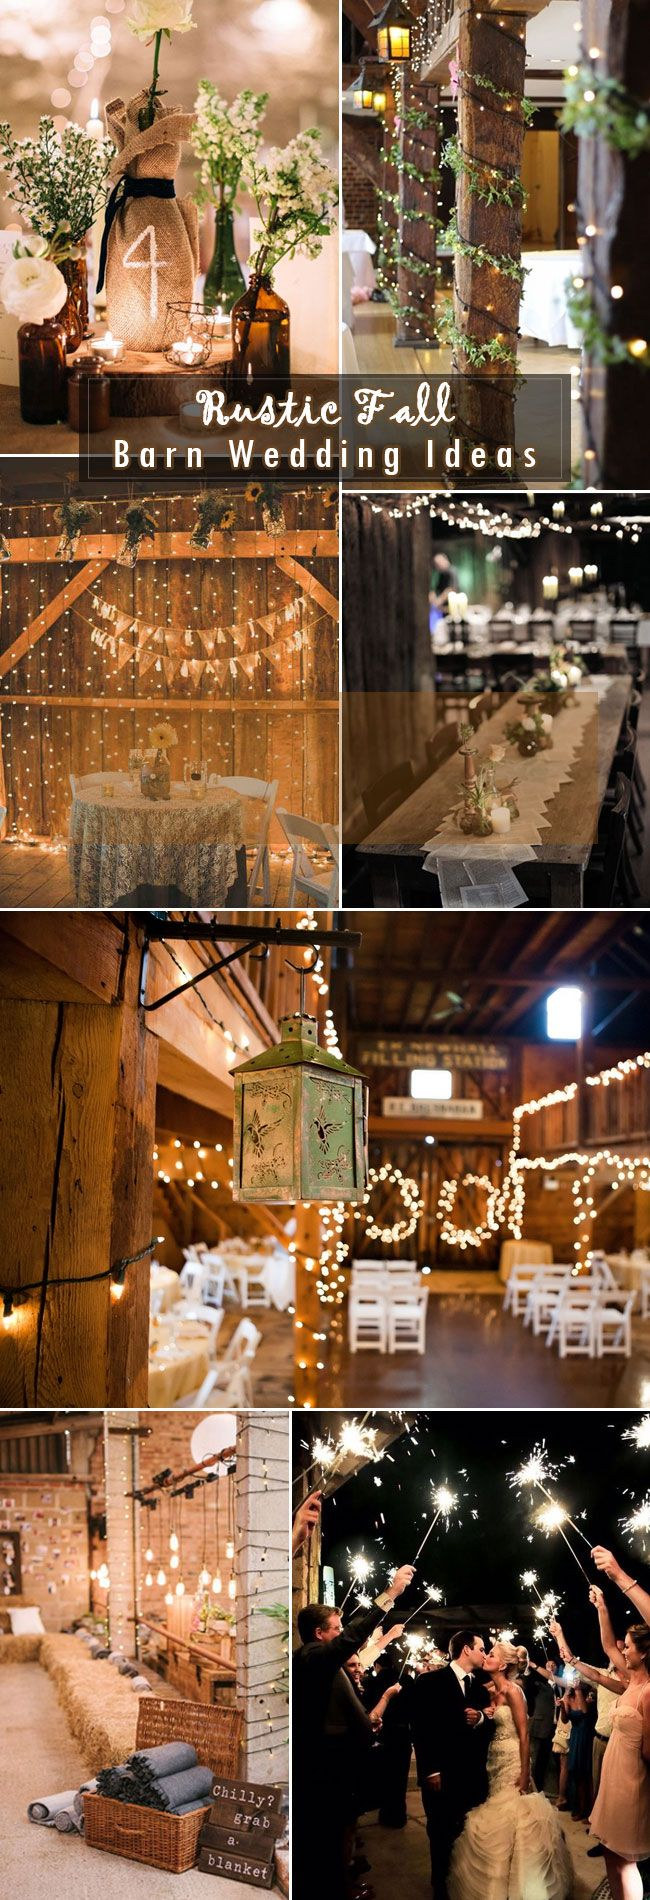 Hanging lights wedding decor   Rustic Fall Barn Wedding Ideas That Will Take Your Breath Away